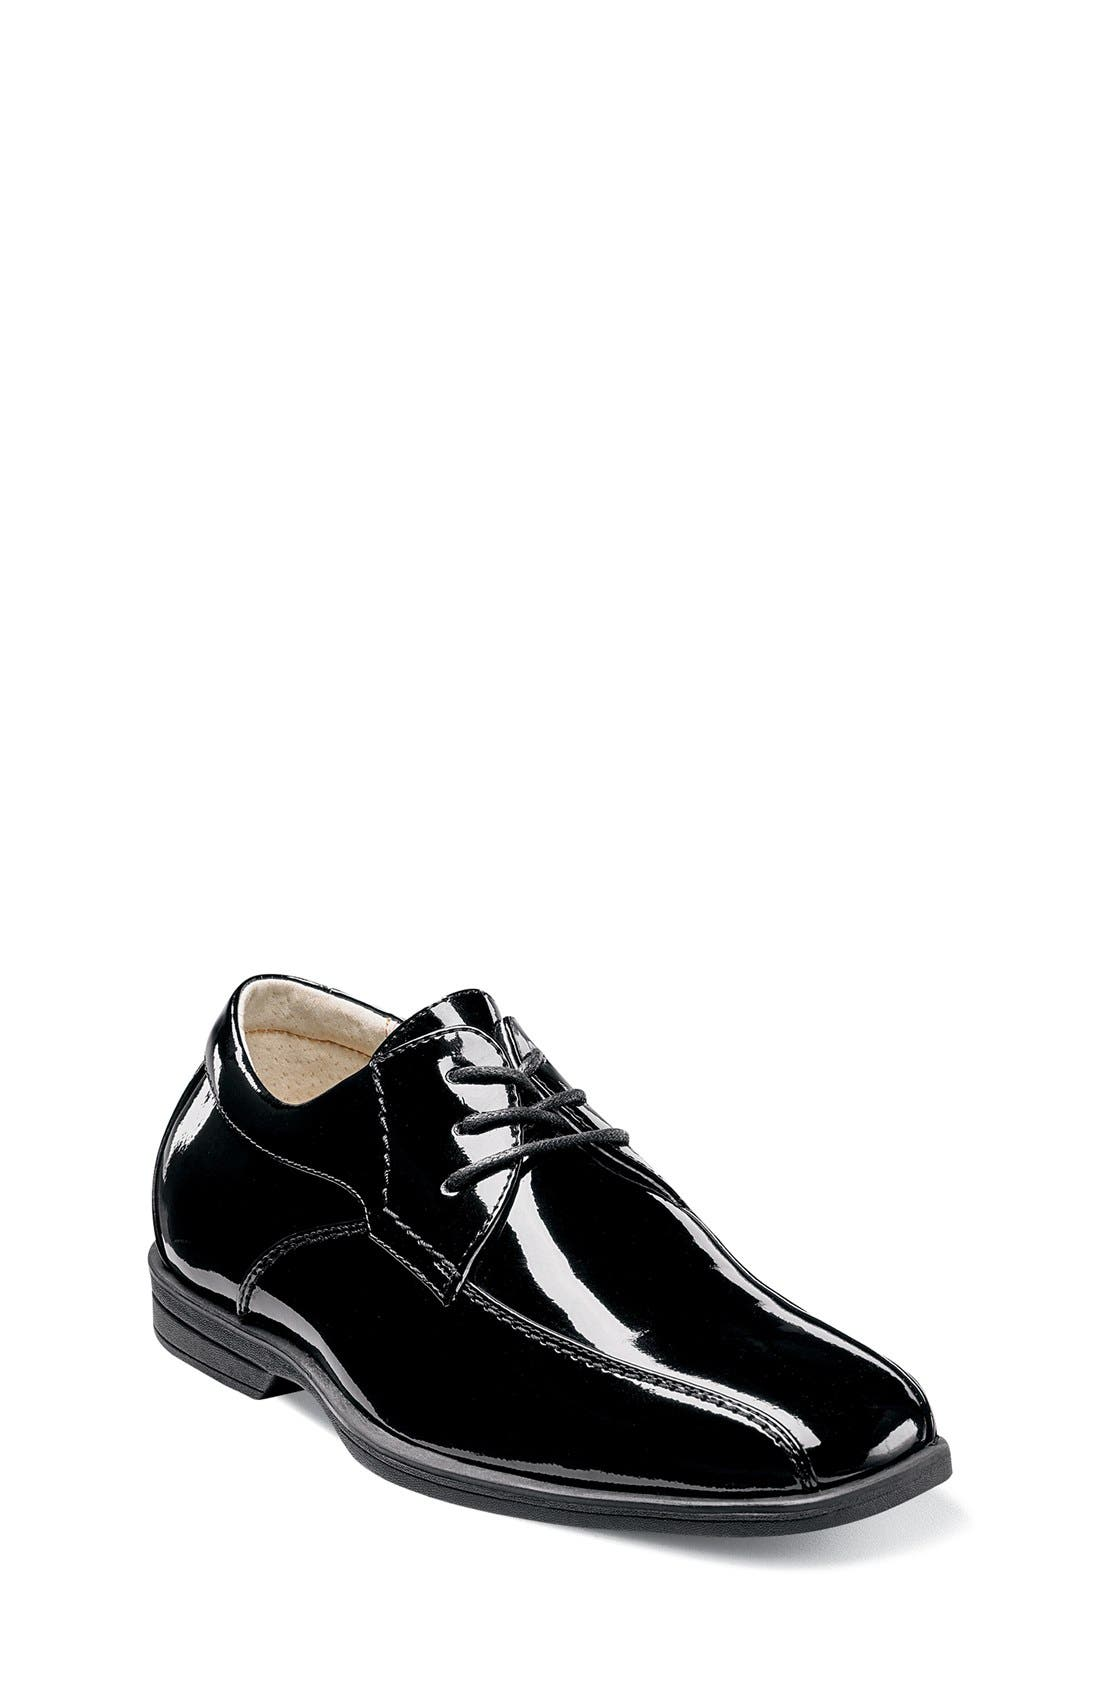 'Reveal' Oxford,                             Main thumbnail 1, color,                             BLACK PATENT LEATHER